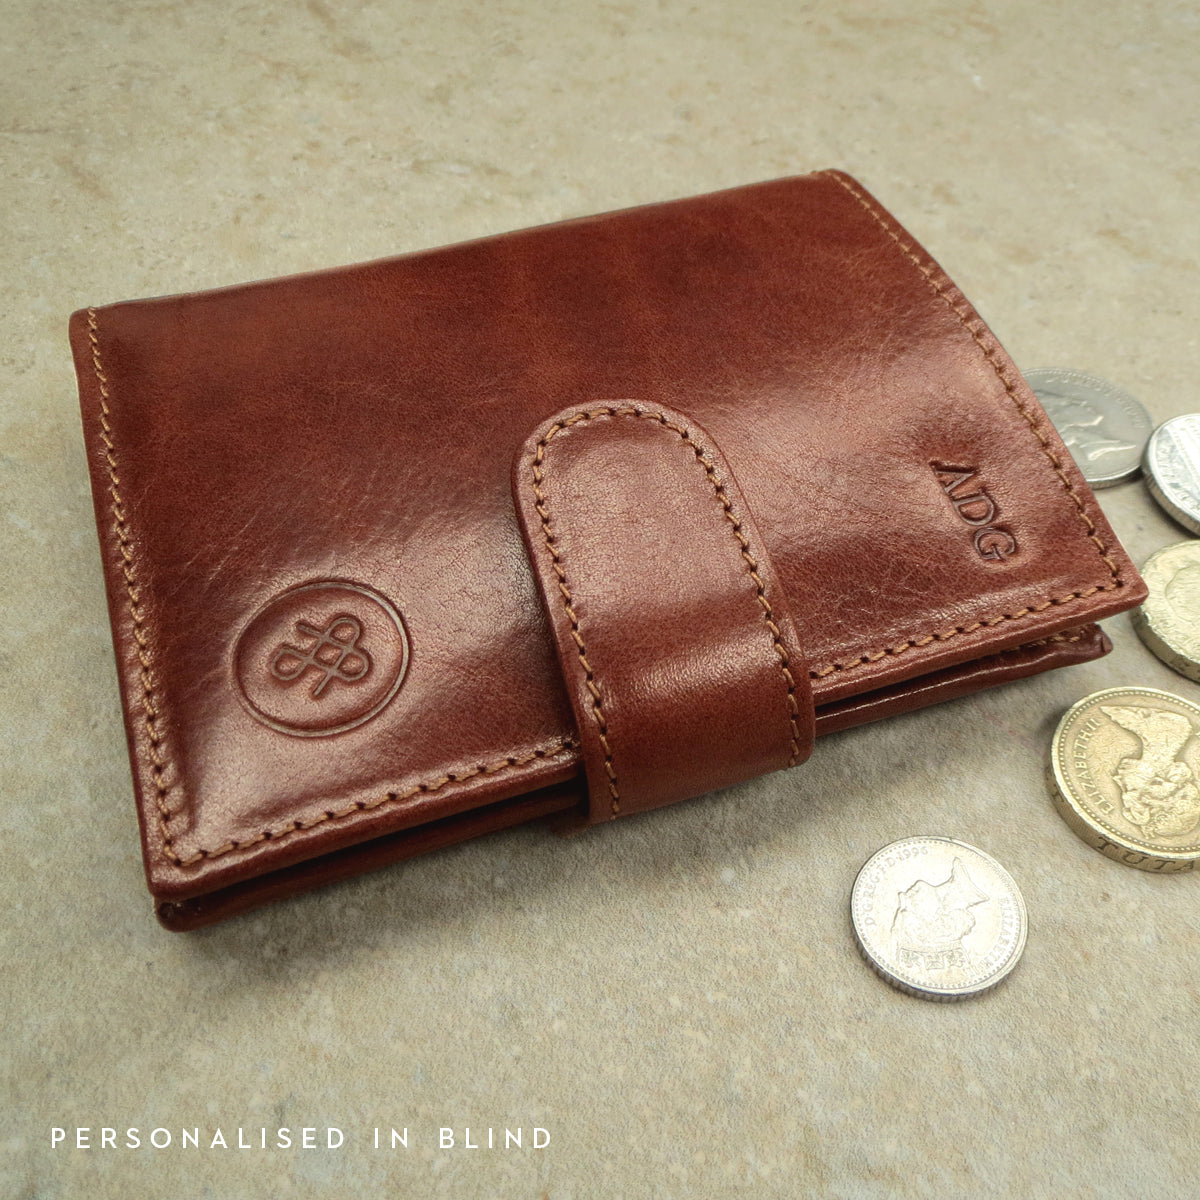 Image 9 of the 'Pietre' Black Veg-Tanned Leather Compact Wallet